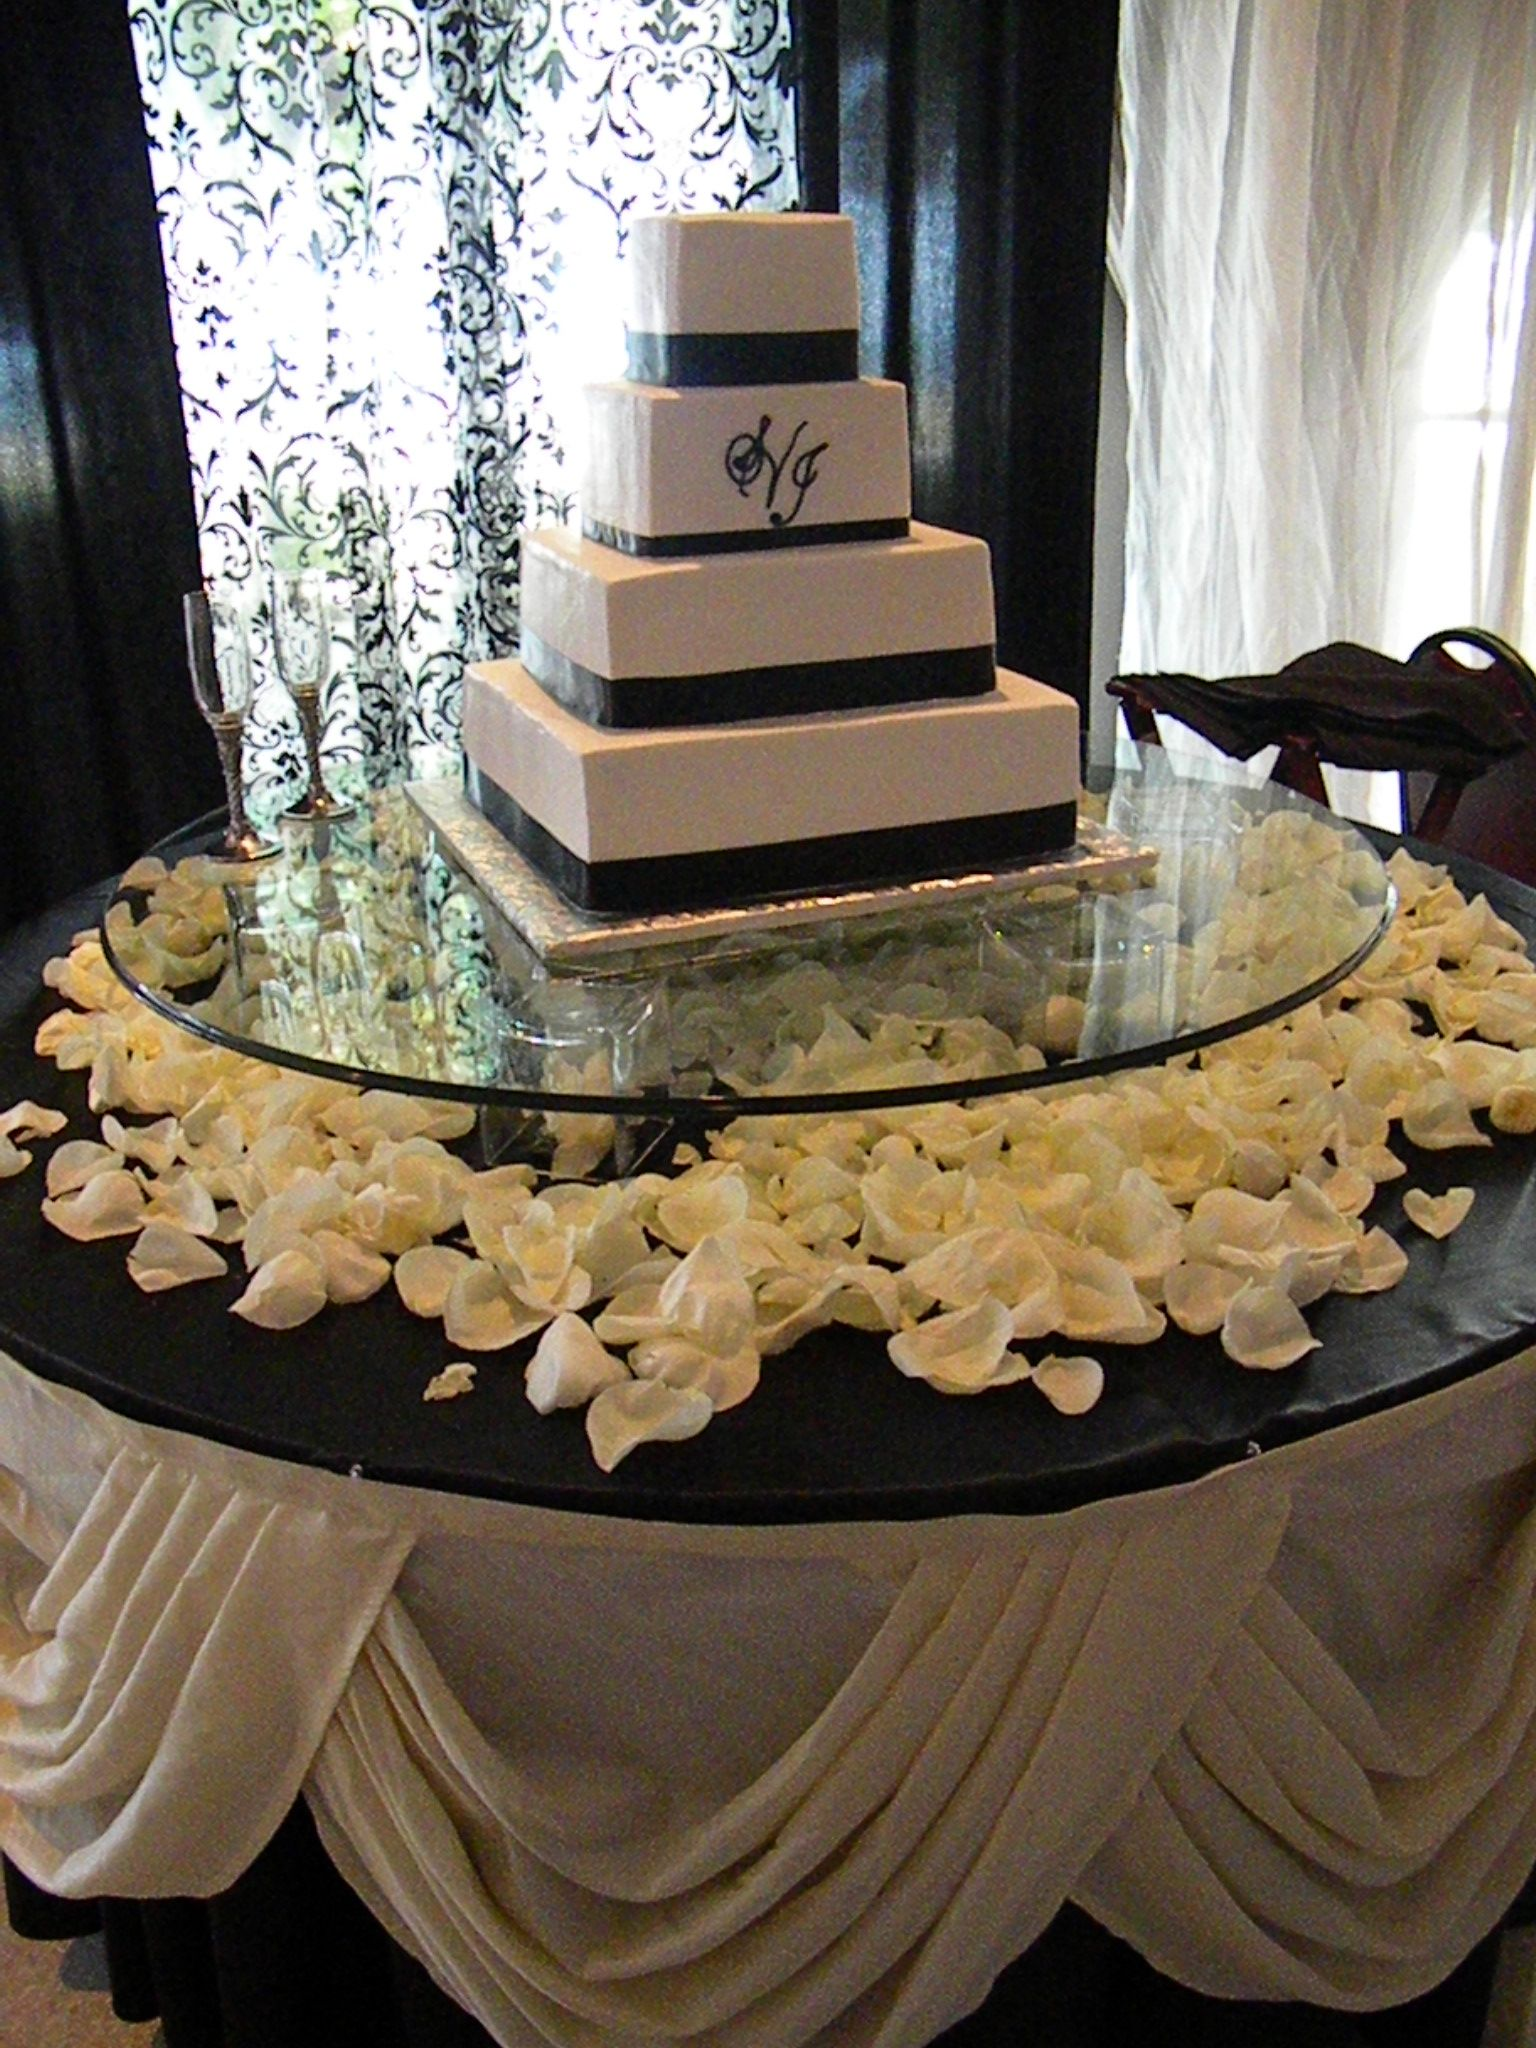 Love this cake stand set up - The glass, candles, flower petals, and ...